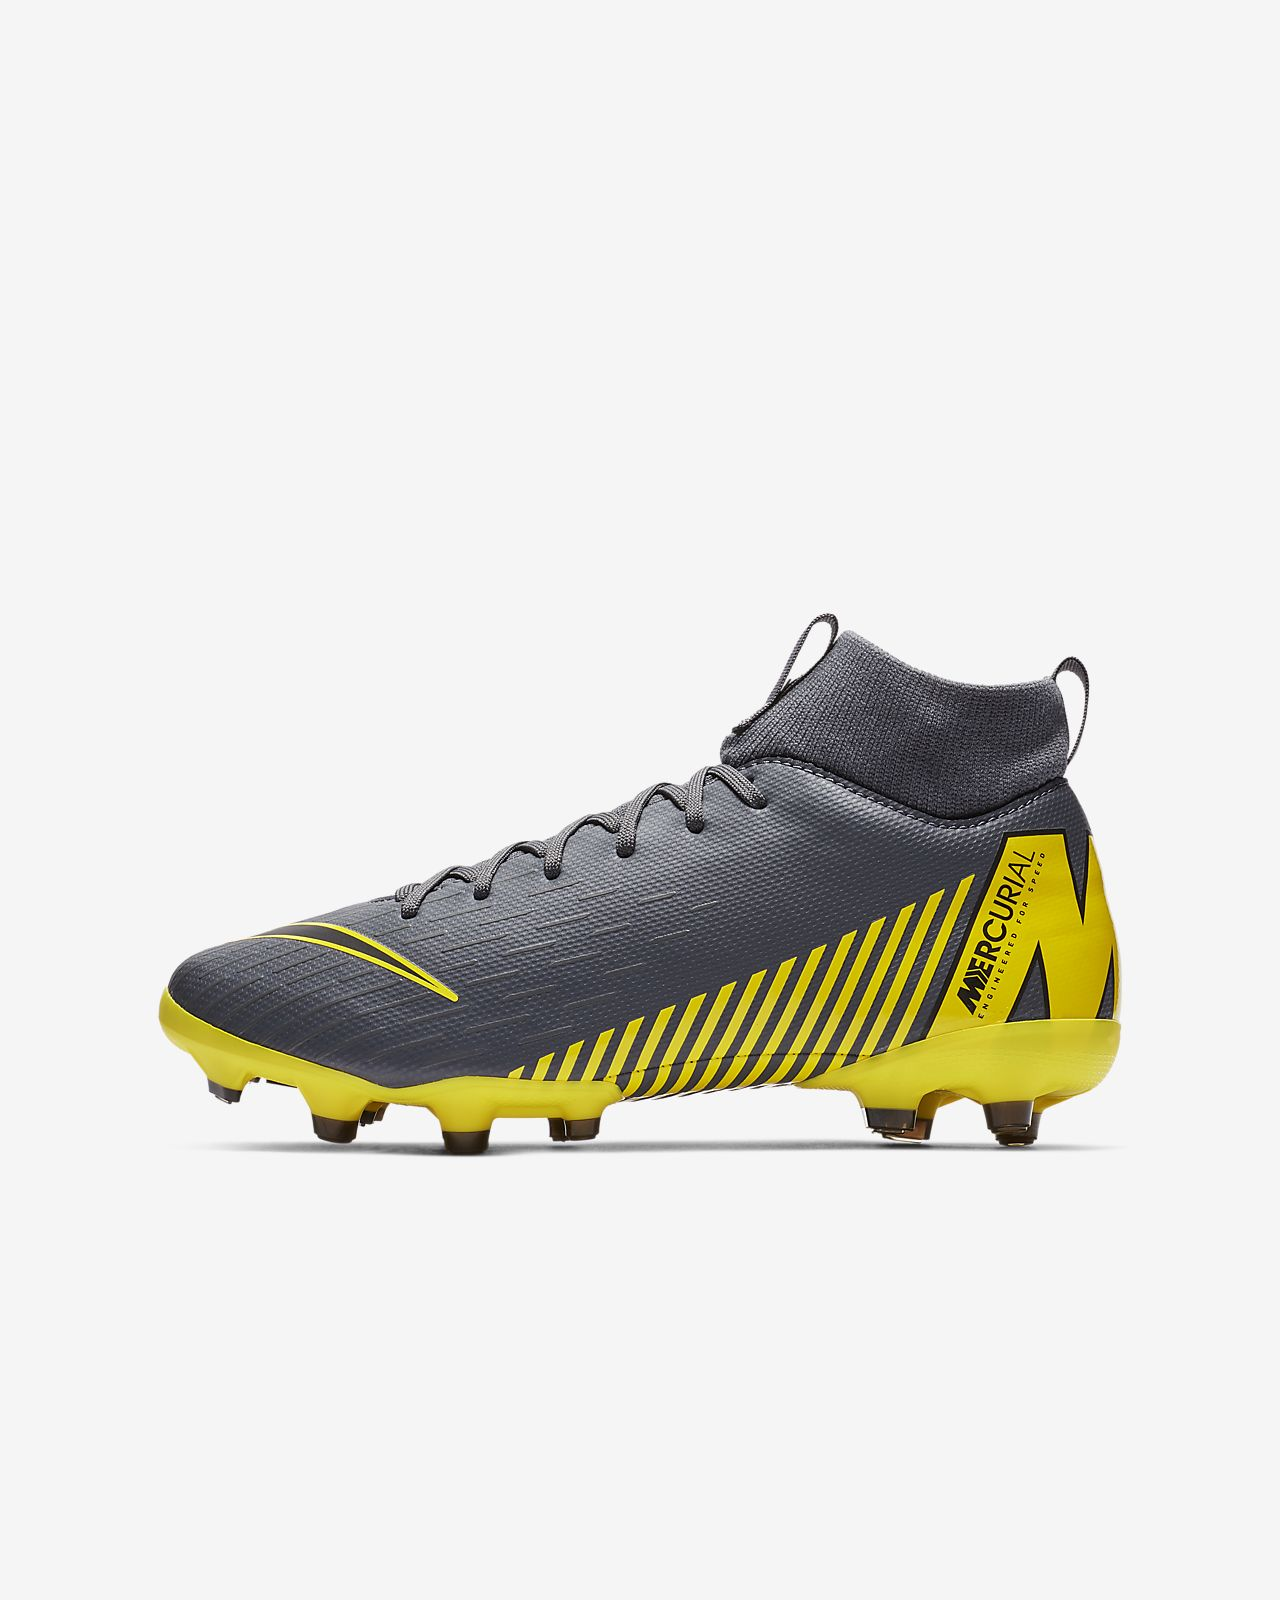 Scarpa da calcio multiterreno Nike Jr. Superfly 6 Academy MG Game Over -  Bambini  730fc517ec3